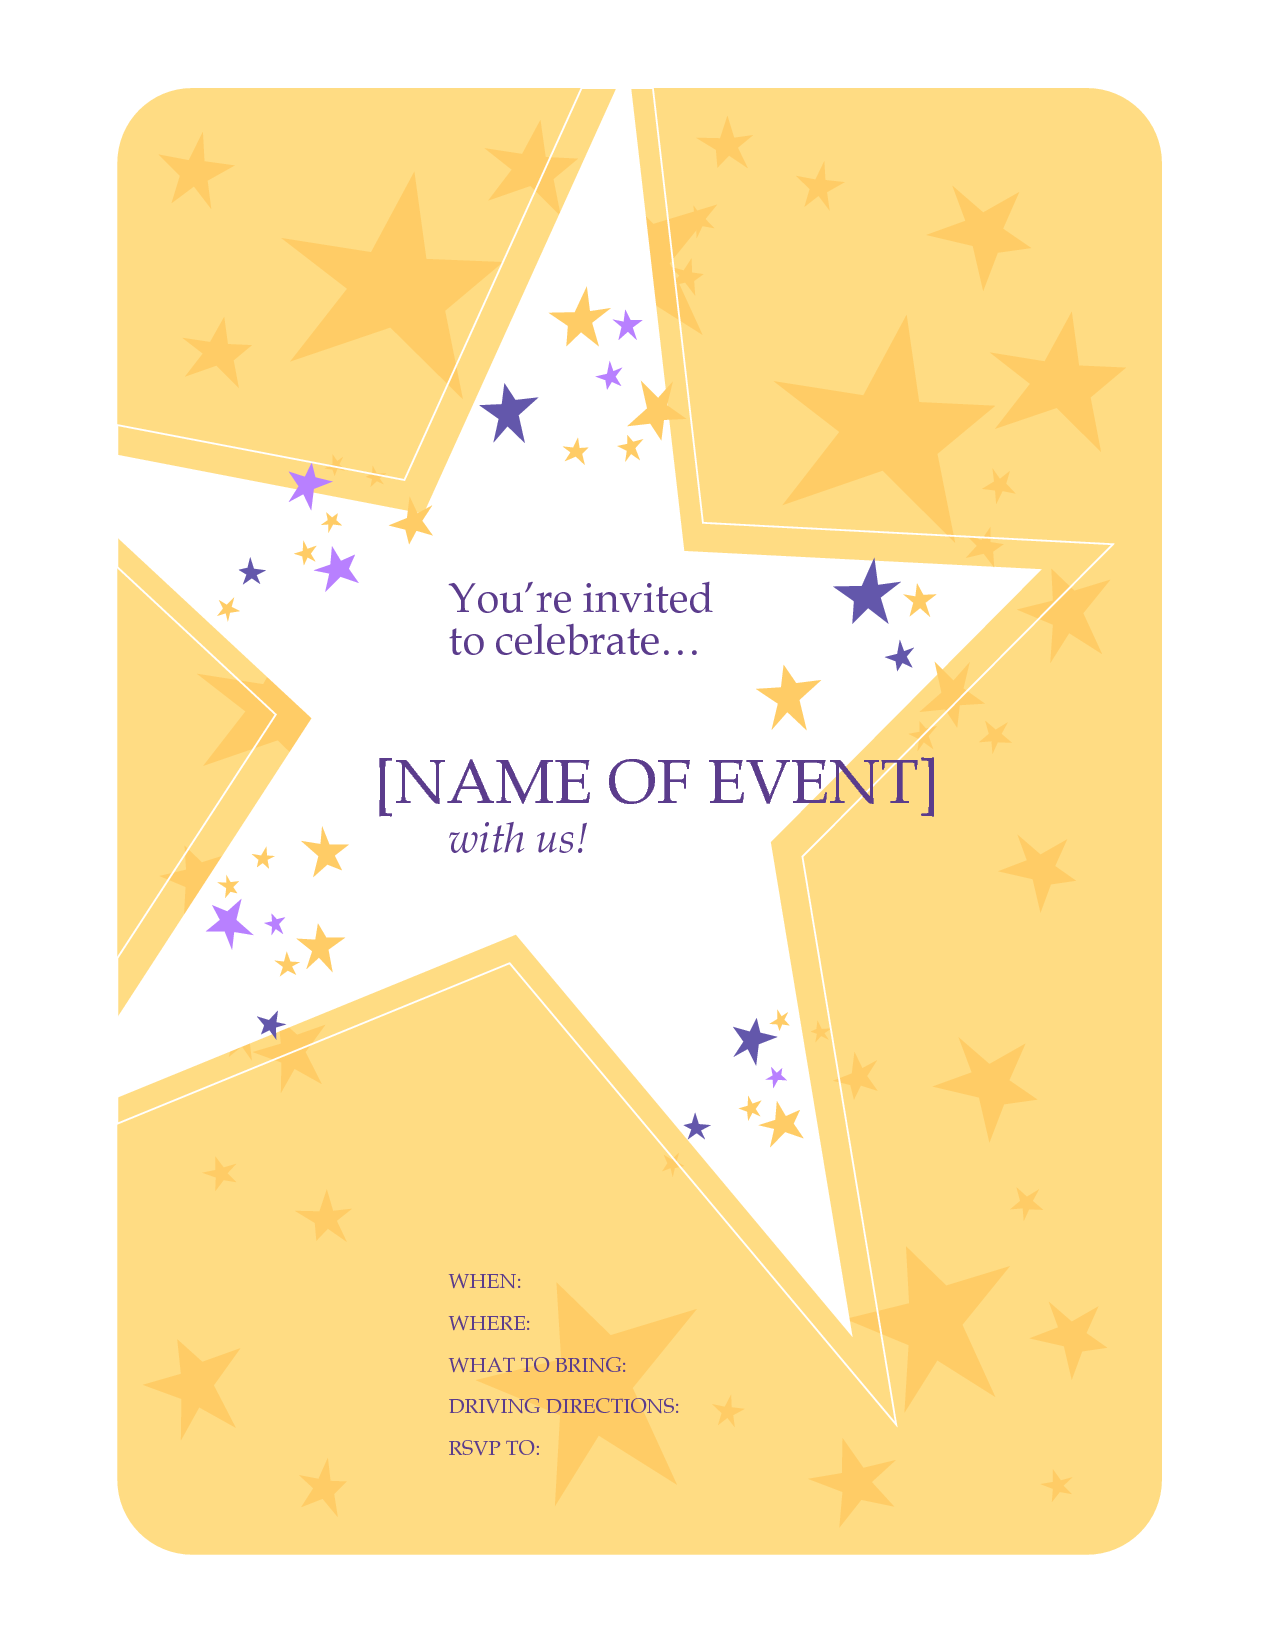 New Year Party Invitation Sample is amazing invitation layout